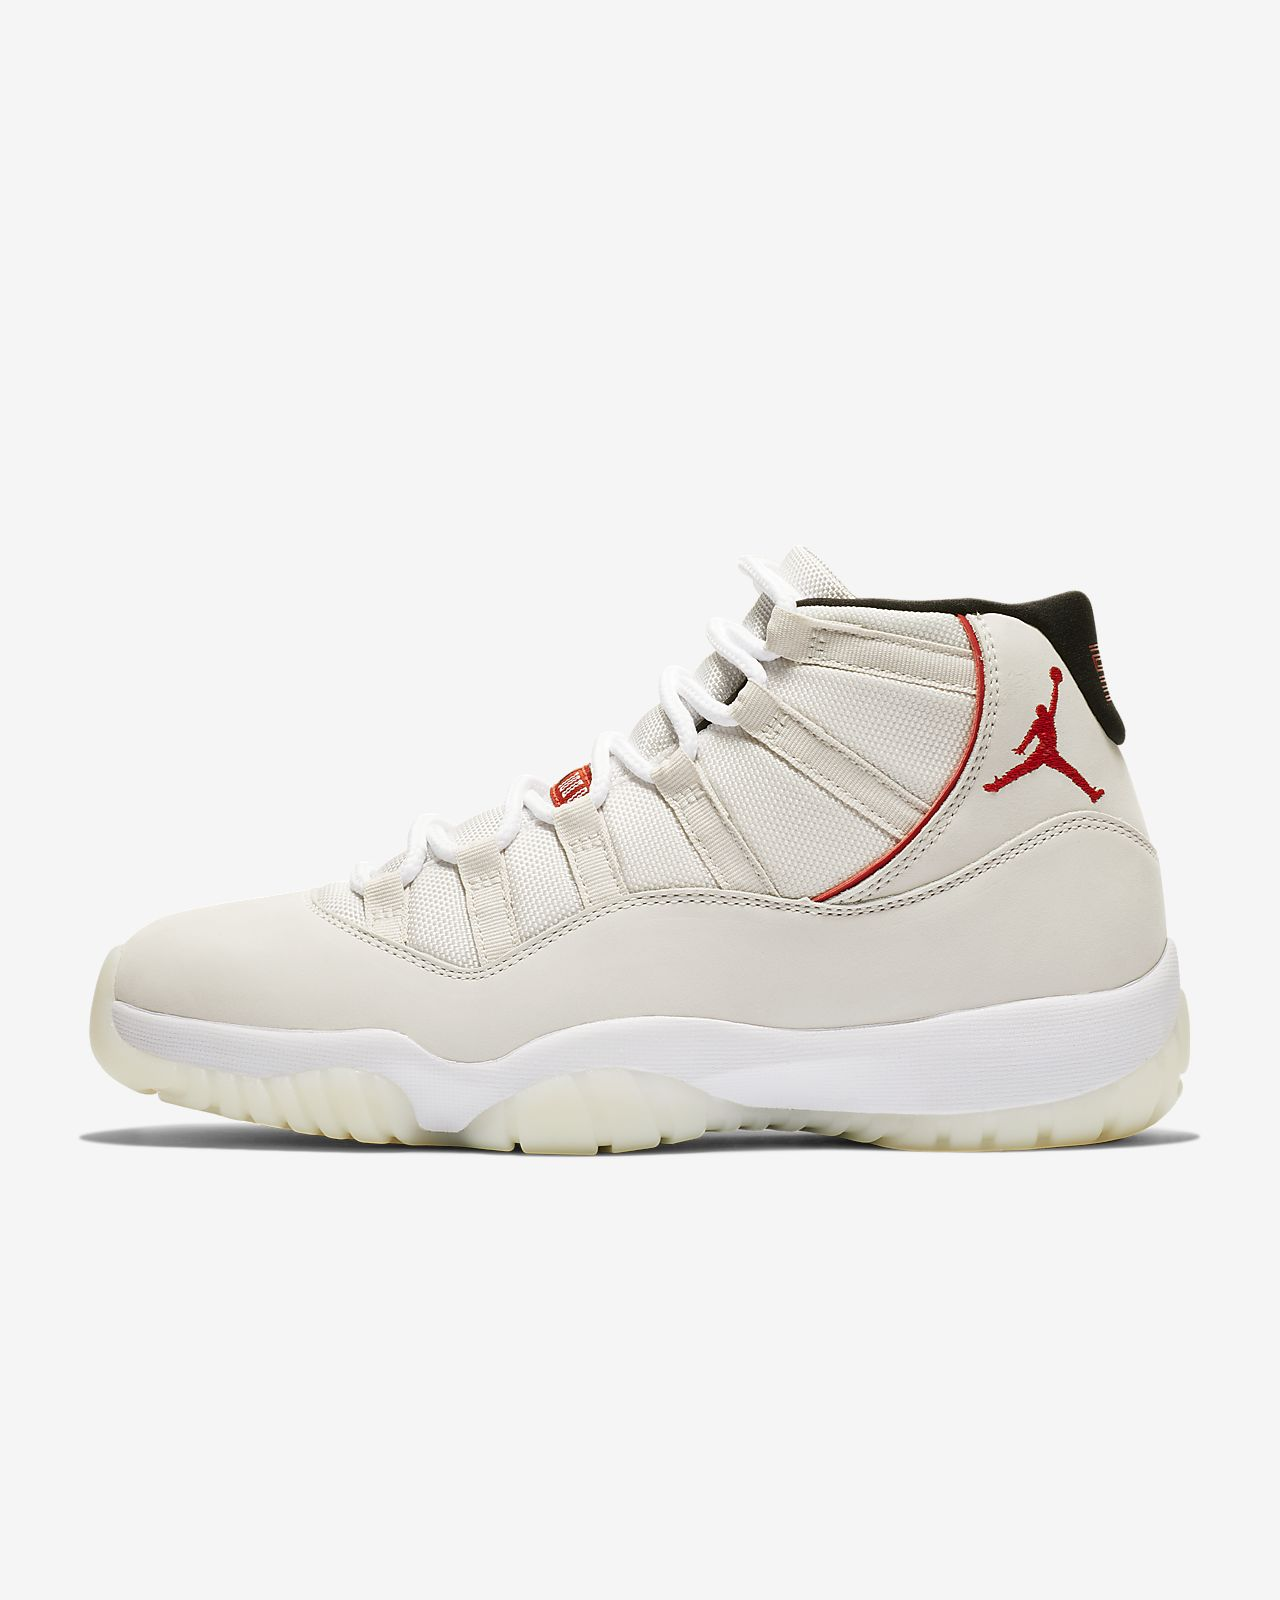 02157347c7a Air Jordan 11 Retro Men s Shoe. Nike.com VN